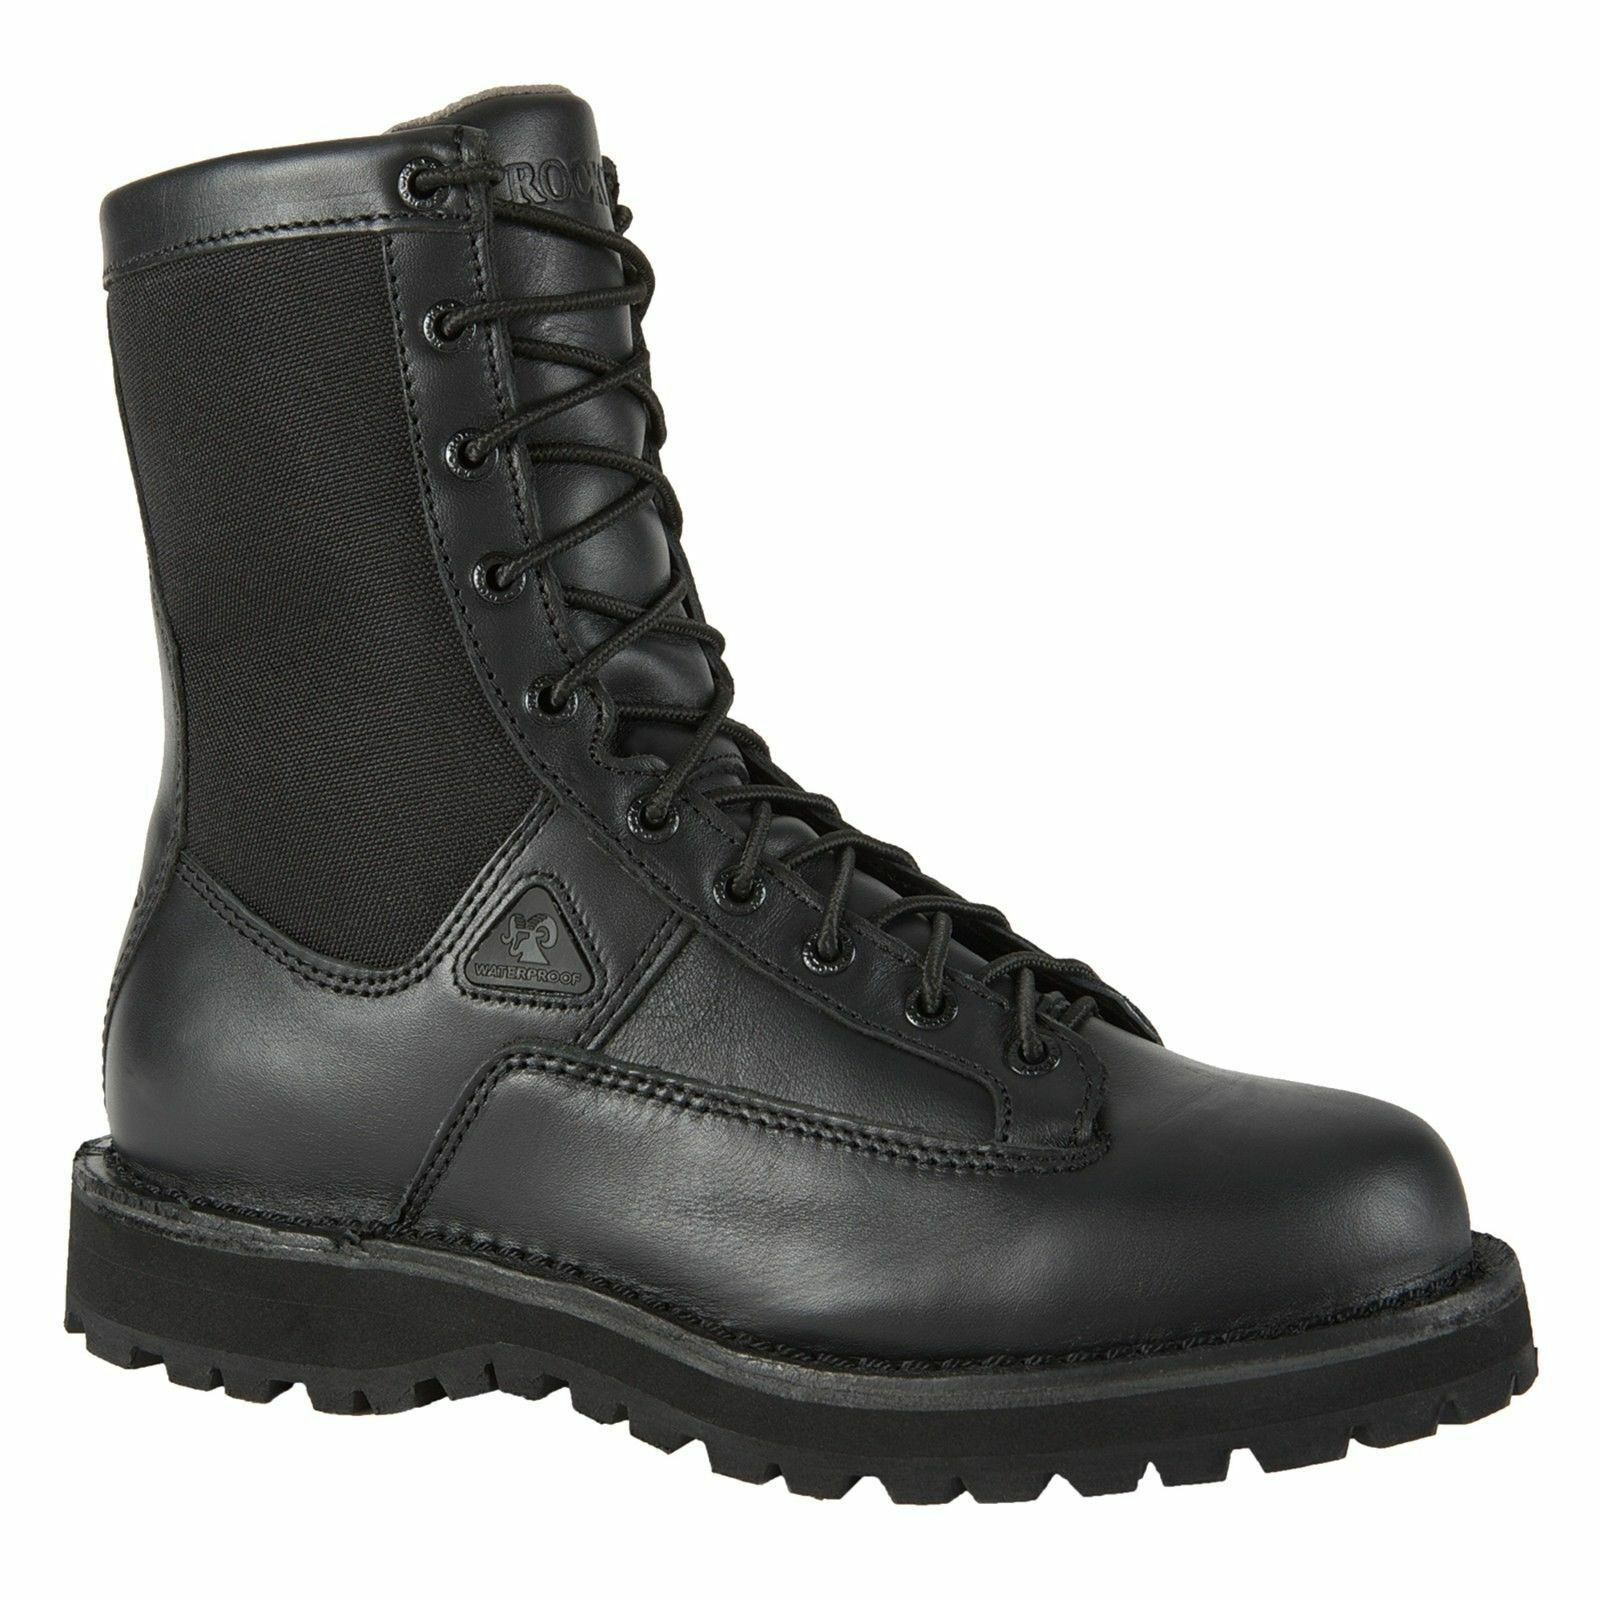 ROCKY PORTLAND LACE-TO-TOE ALL WATERPROOF DUTY BOOTS 2080 * ALL LACE-TO-TOE SIZES - NEW 054fc8